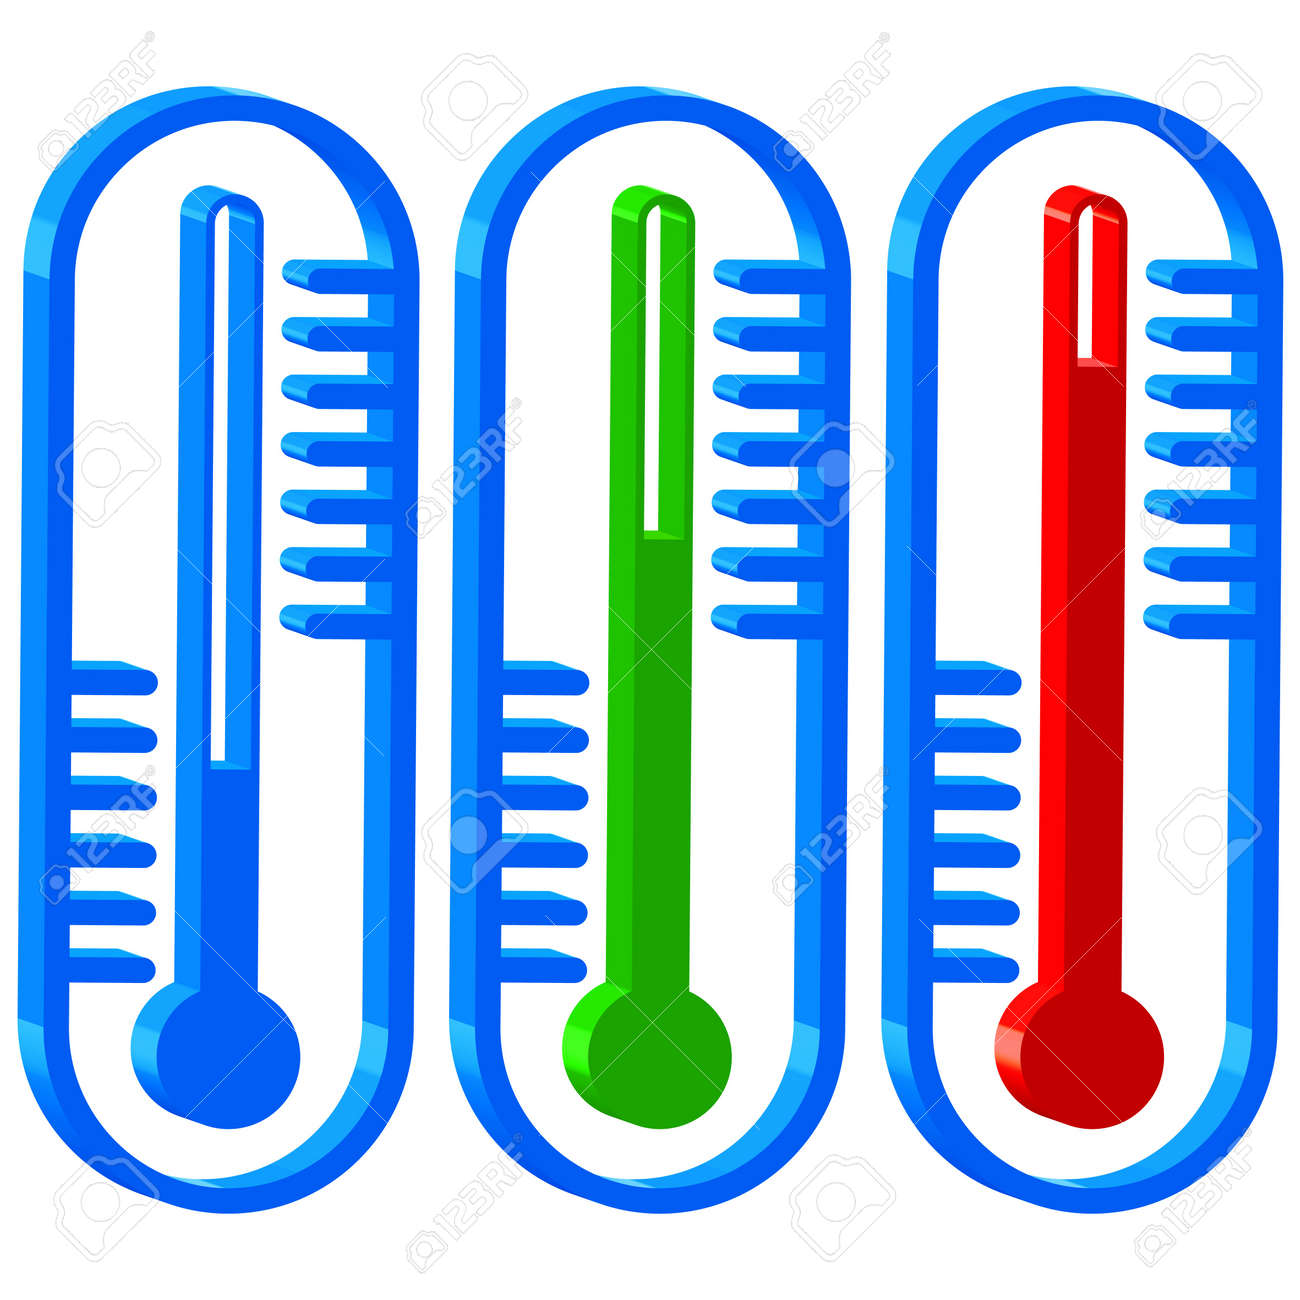 Thermometers icons for various design Stock Vector - 21319274